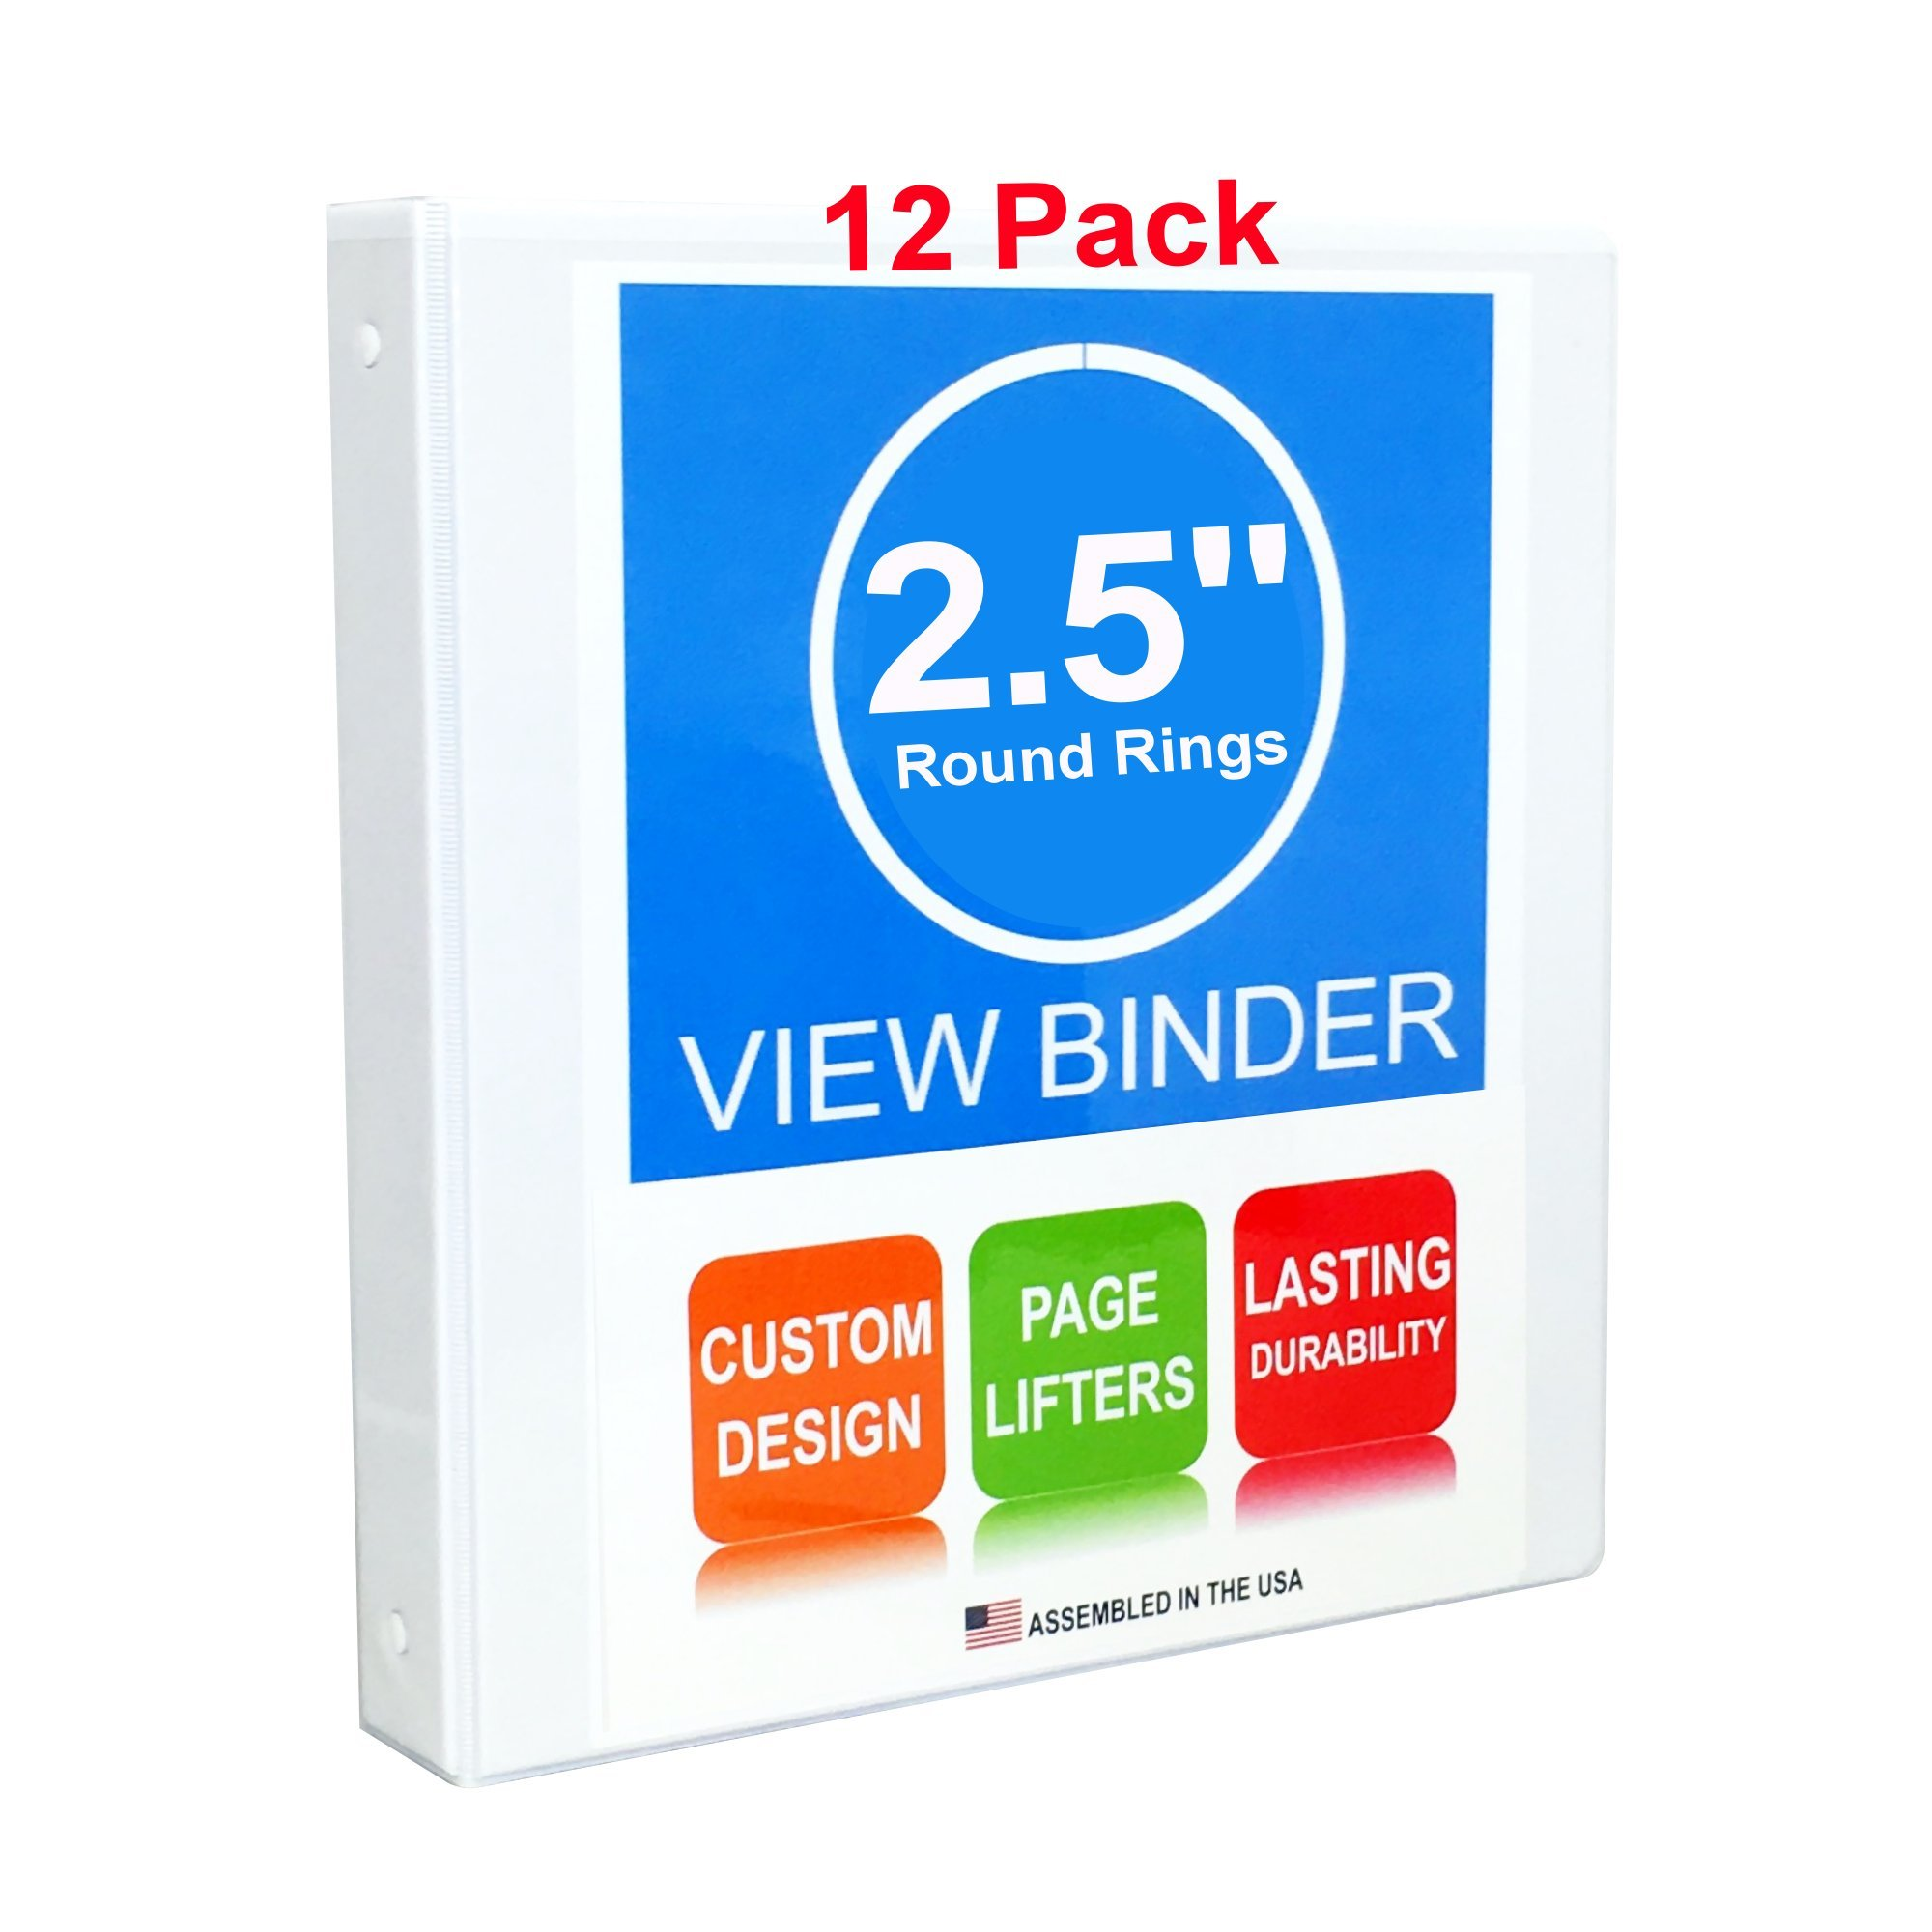 3 Ring Binder, 2.5'' Round Rings, 12 Pack, Clear View, White, Pockets, 3.2'' Spine